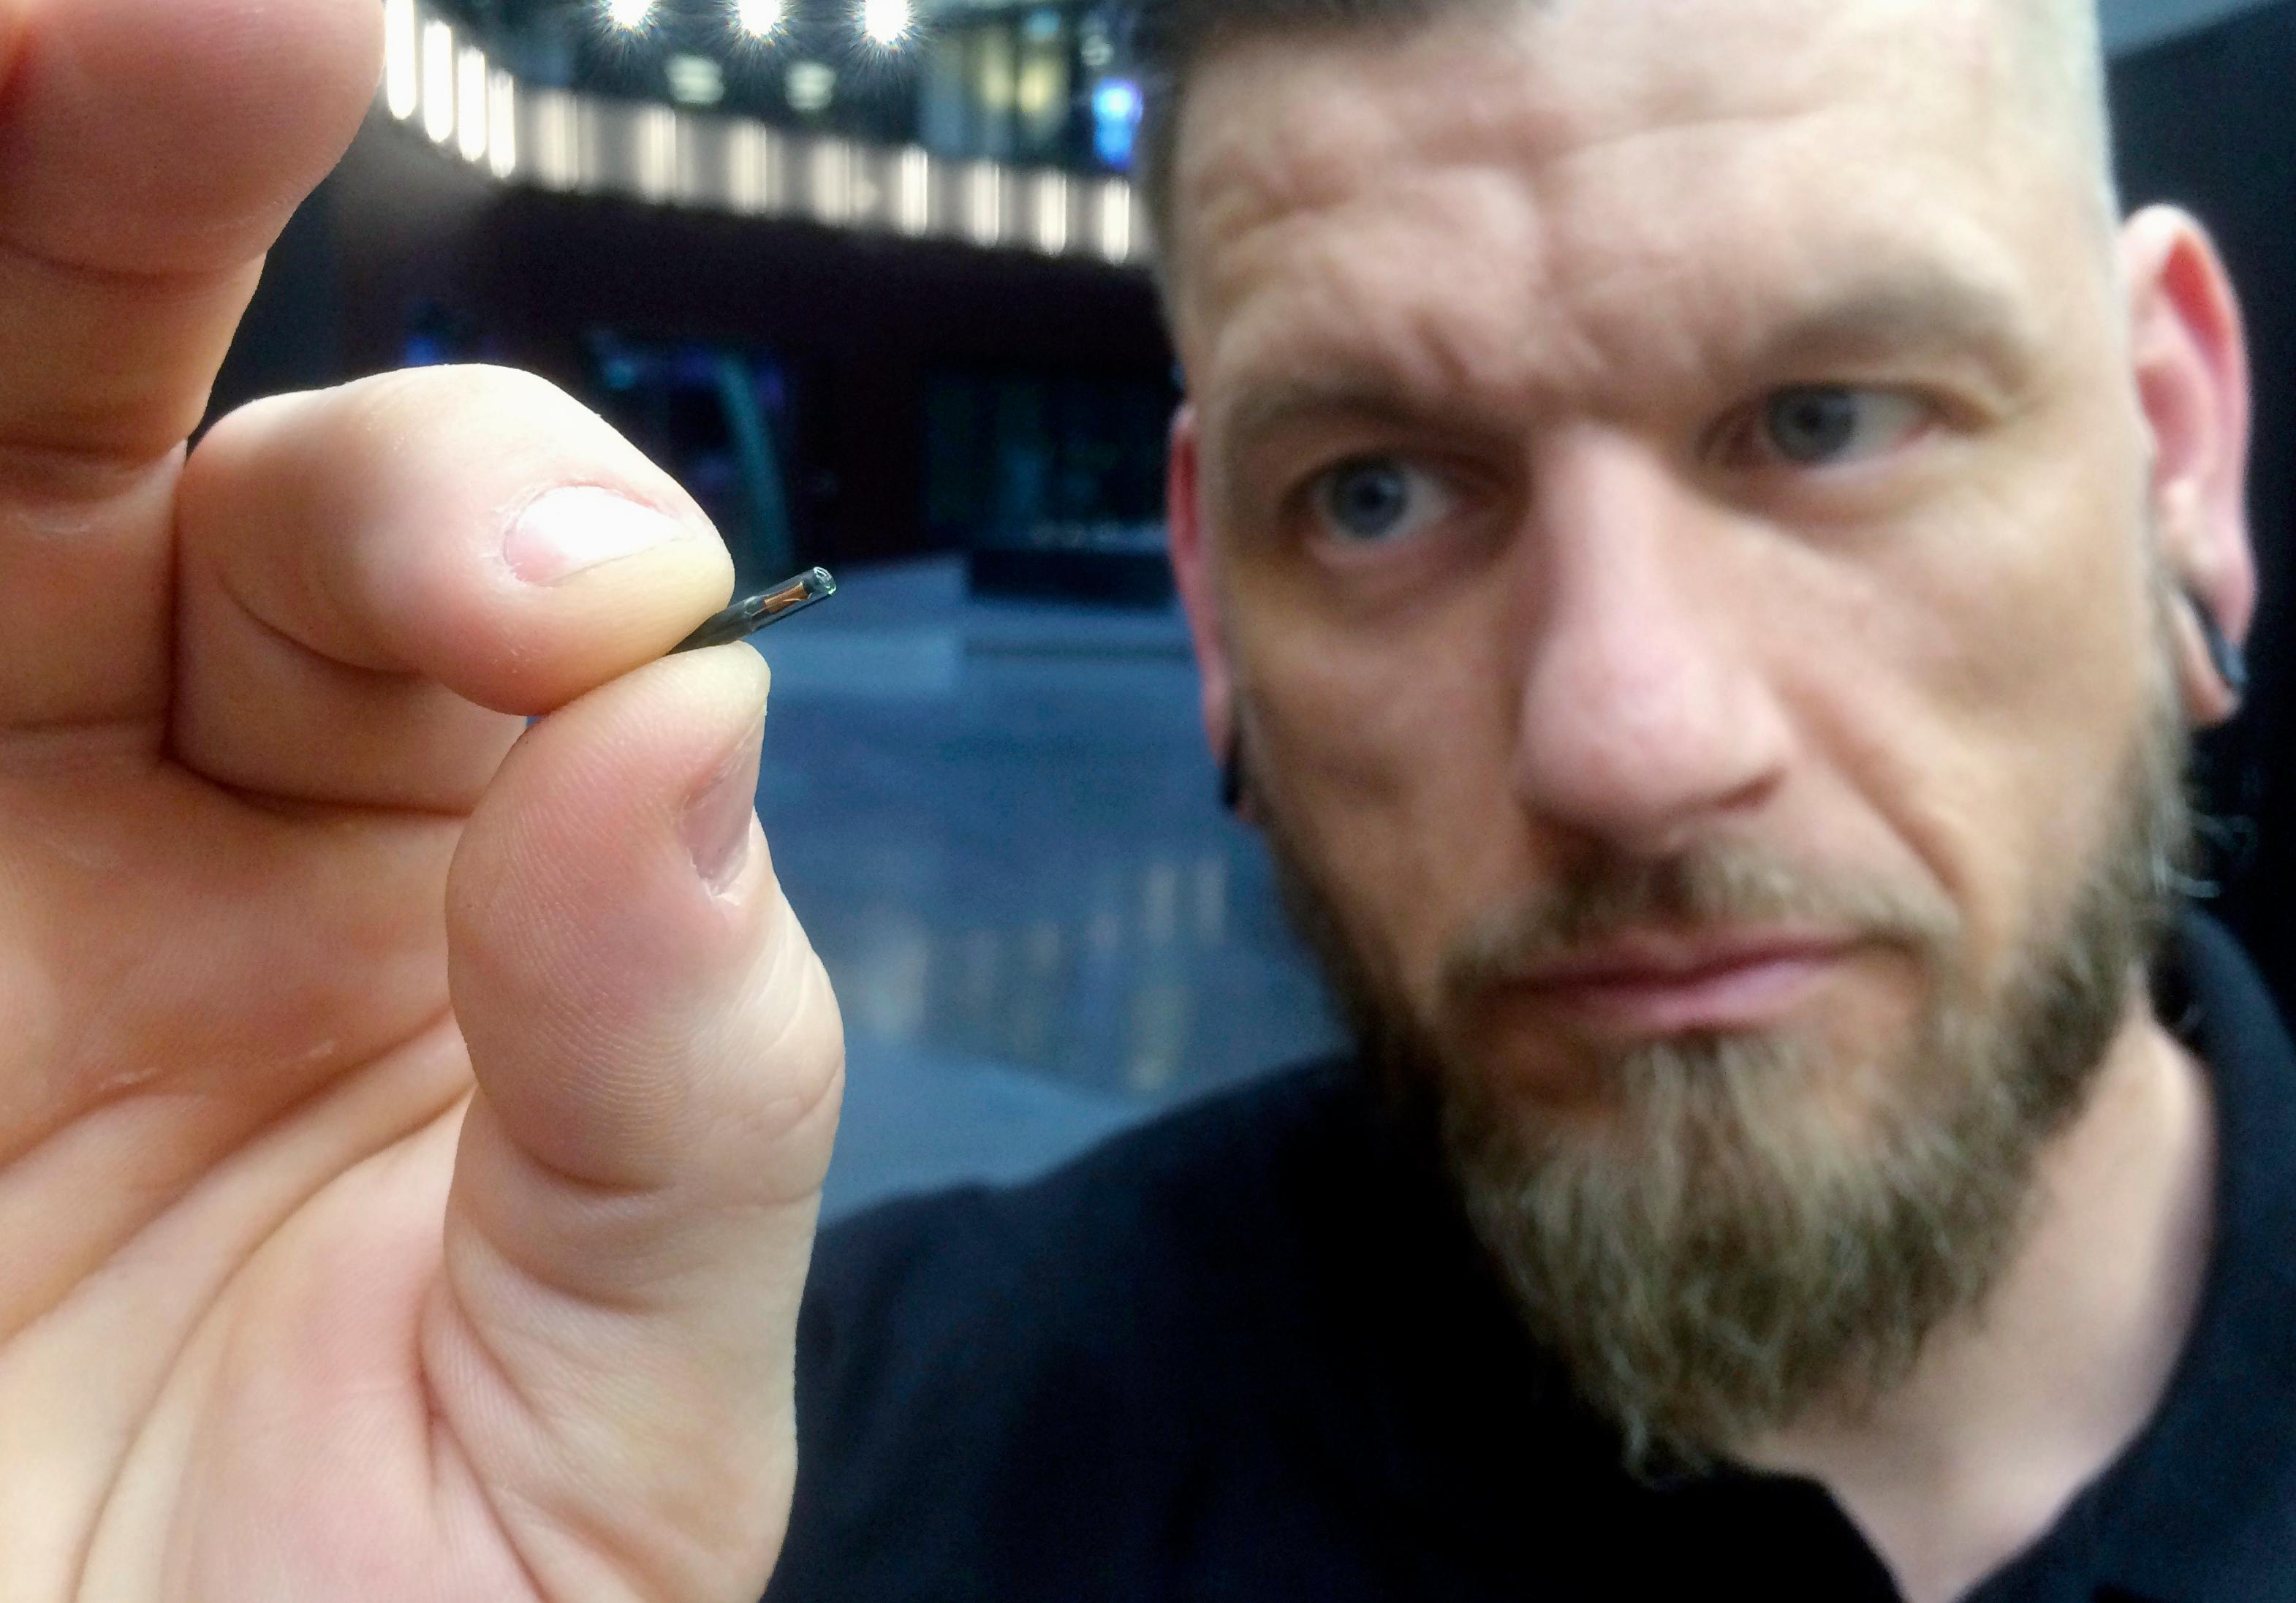 FILE - In this March 14, 2017, file photo, Jowan Osterlund from Biohax Sweden, holds a small microchip implant, similar to those implanted into workers at the Epicenter digital innovation business center during a party at the co-working space in central Stockholm. (AP Photo/James Brooks, File)